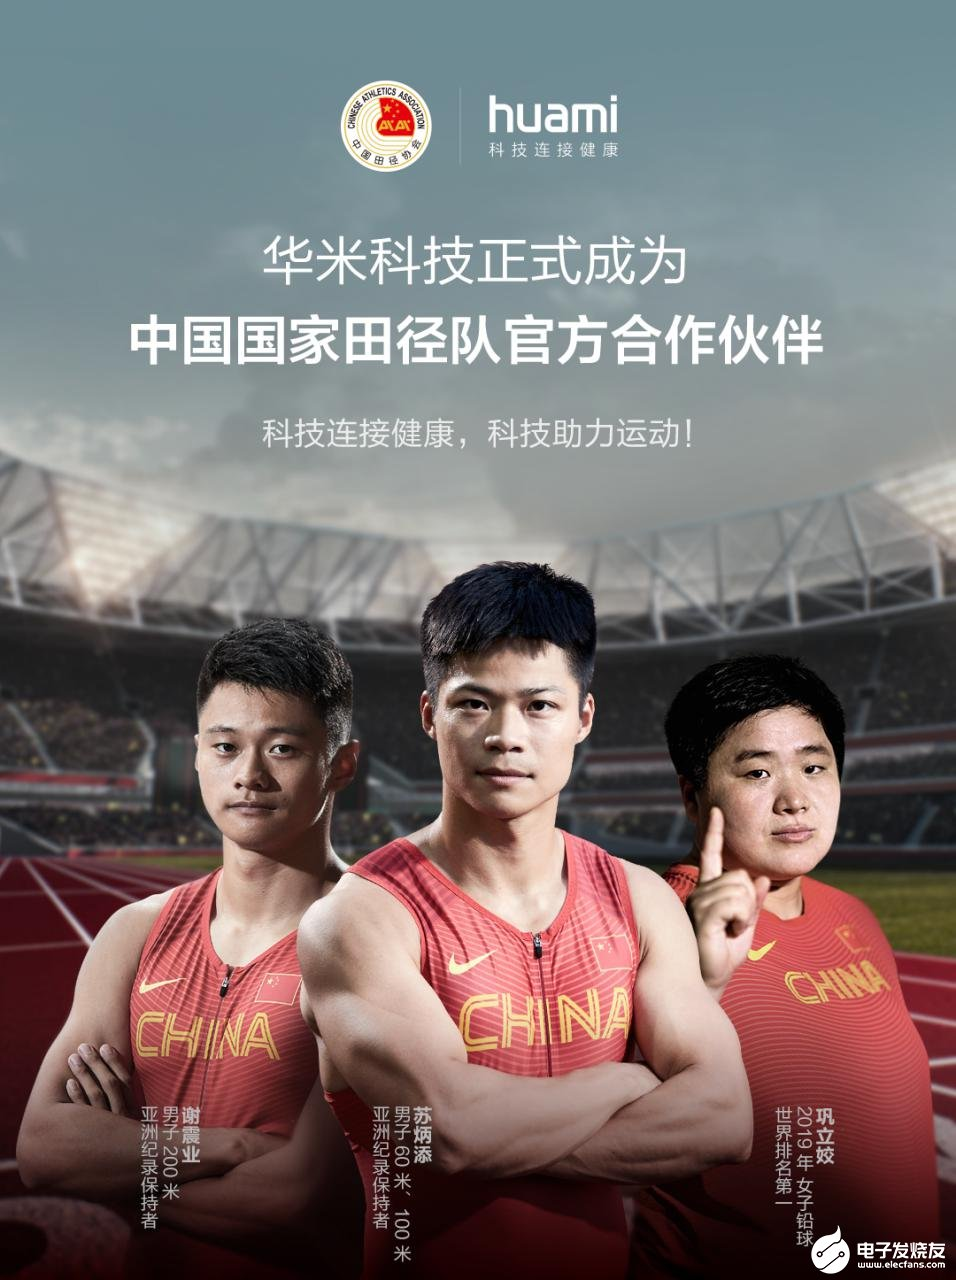 Huami technology and China Track and Field Association officially signed a cooperation agreement, which will help the development of China's track and field sports